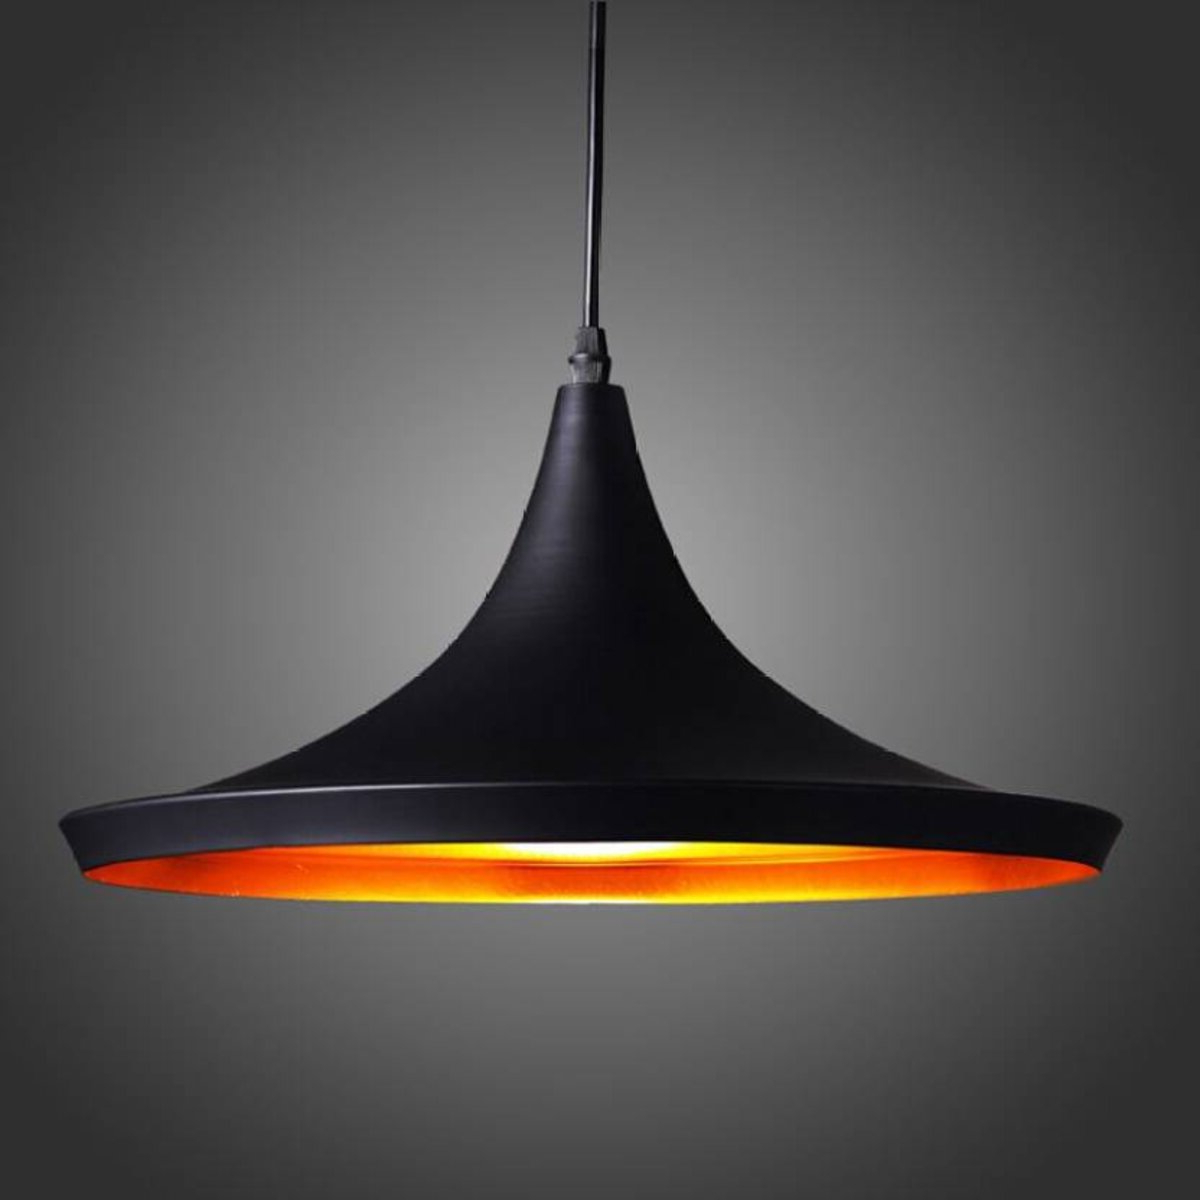 Details About Pendant Light Led Ceiling Lights Lamp Shade Industrial Cafe Lighting Kitchen Bar For Trendy Akash Industrial Vintage 1 Light Geometric Pendants (View 7 of 20)